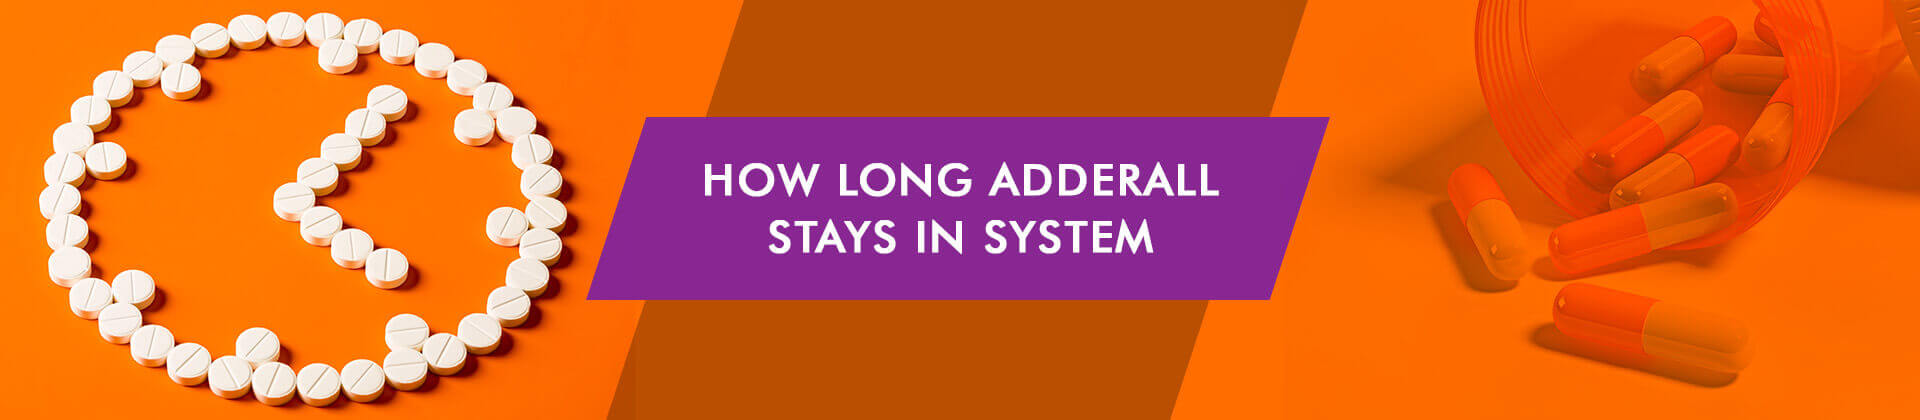 How Long Adderall Stays in System: Urine, Hair, Blood, and Saliva Tests